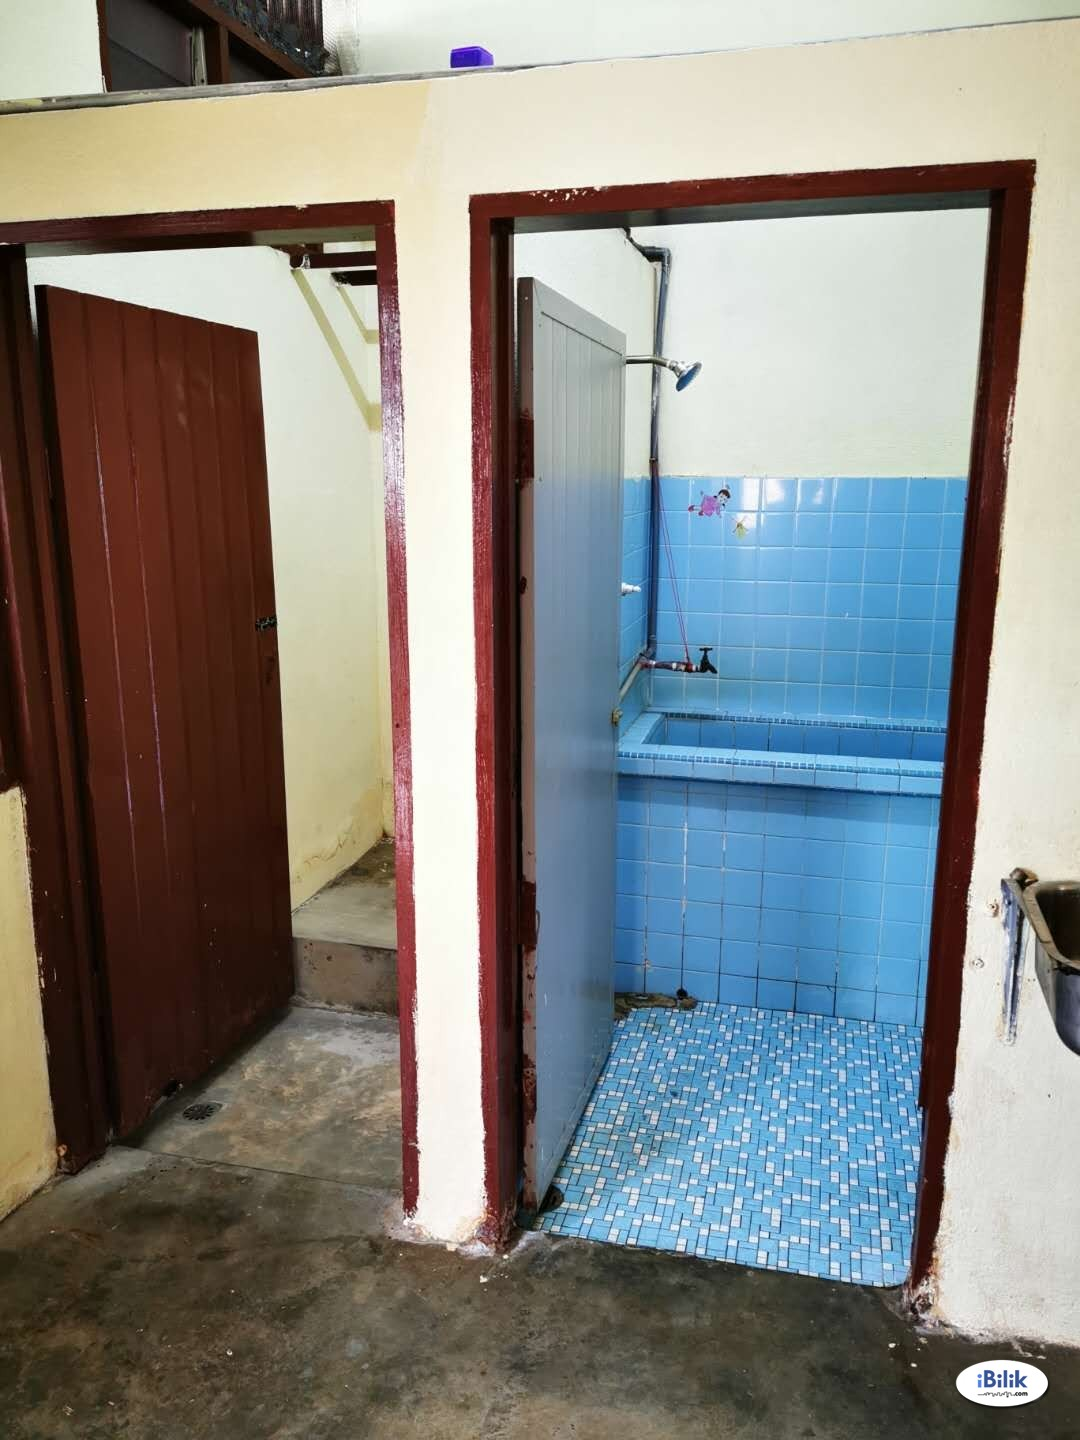 ASTON ROAD SMALL ROOM TO RENT NEAR JIT SIN HIGH SCHOOL AND BM PLAZA AVAILABLE IMMEDIATELY.